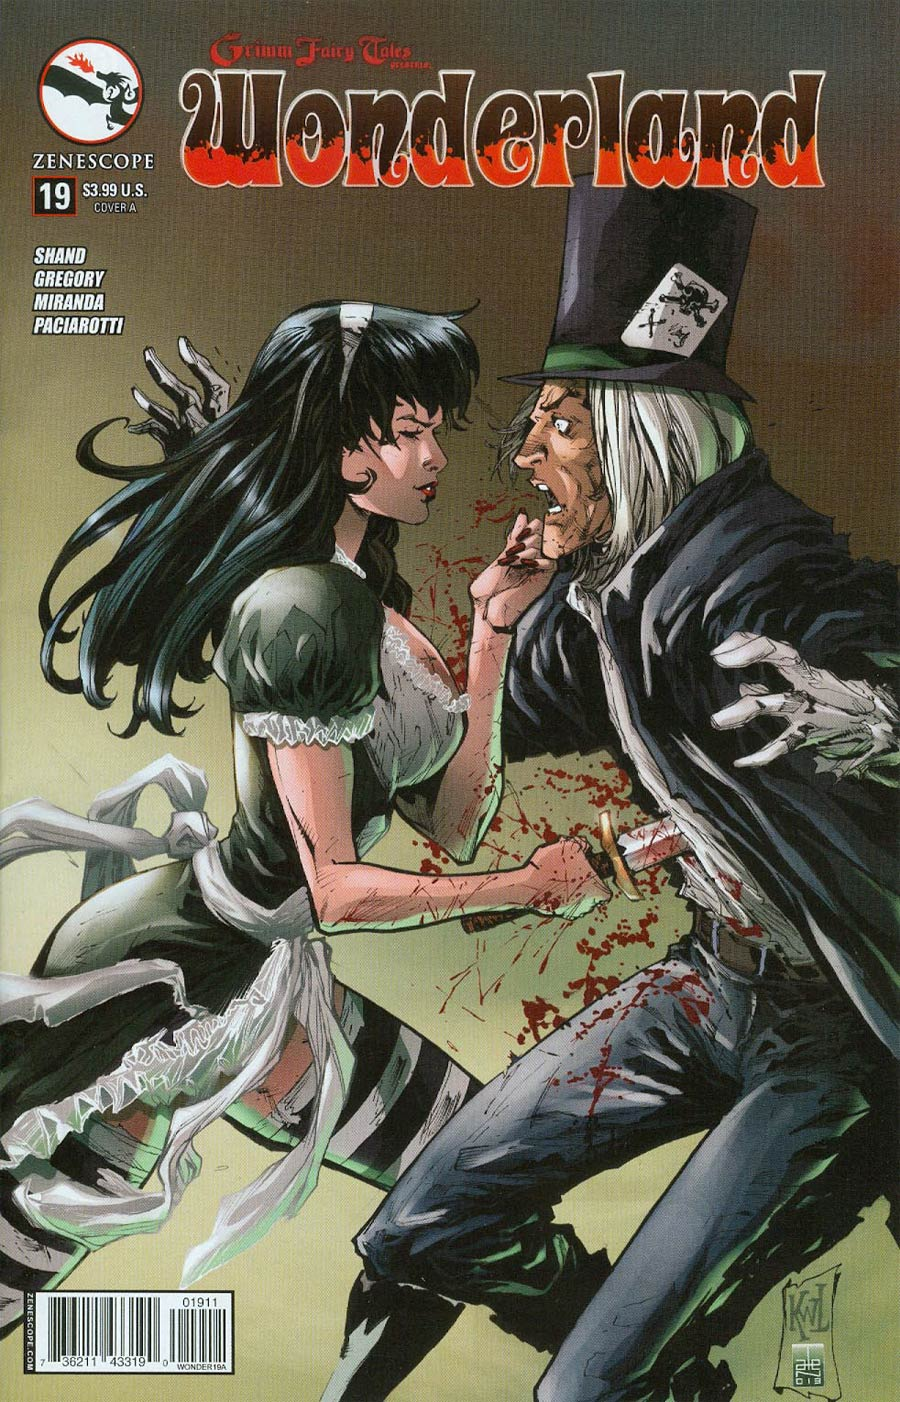 Grimm Fairy Tales Presents Wonderland Vol 2 #19 Cover A Ken Lashley